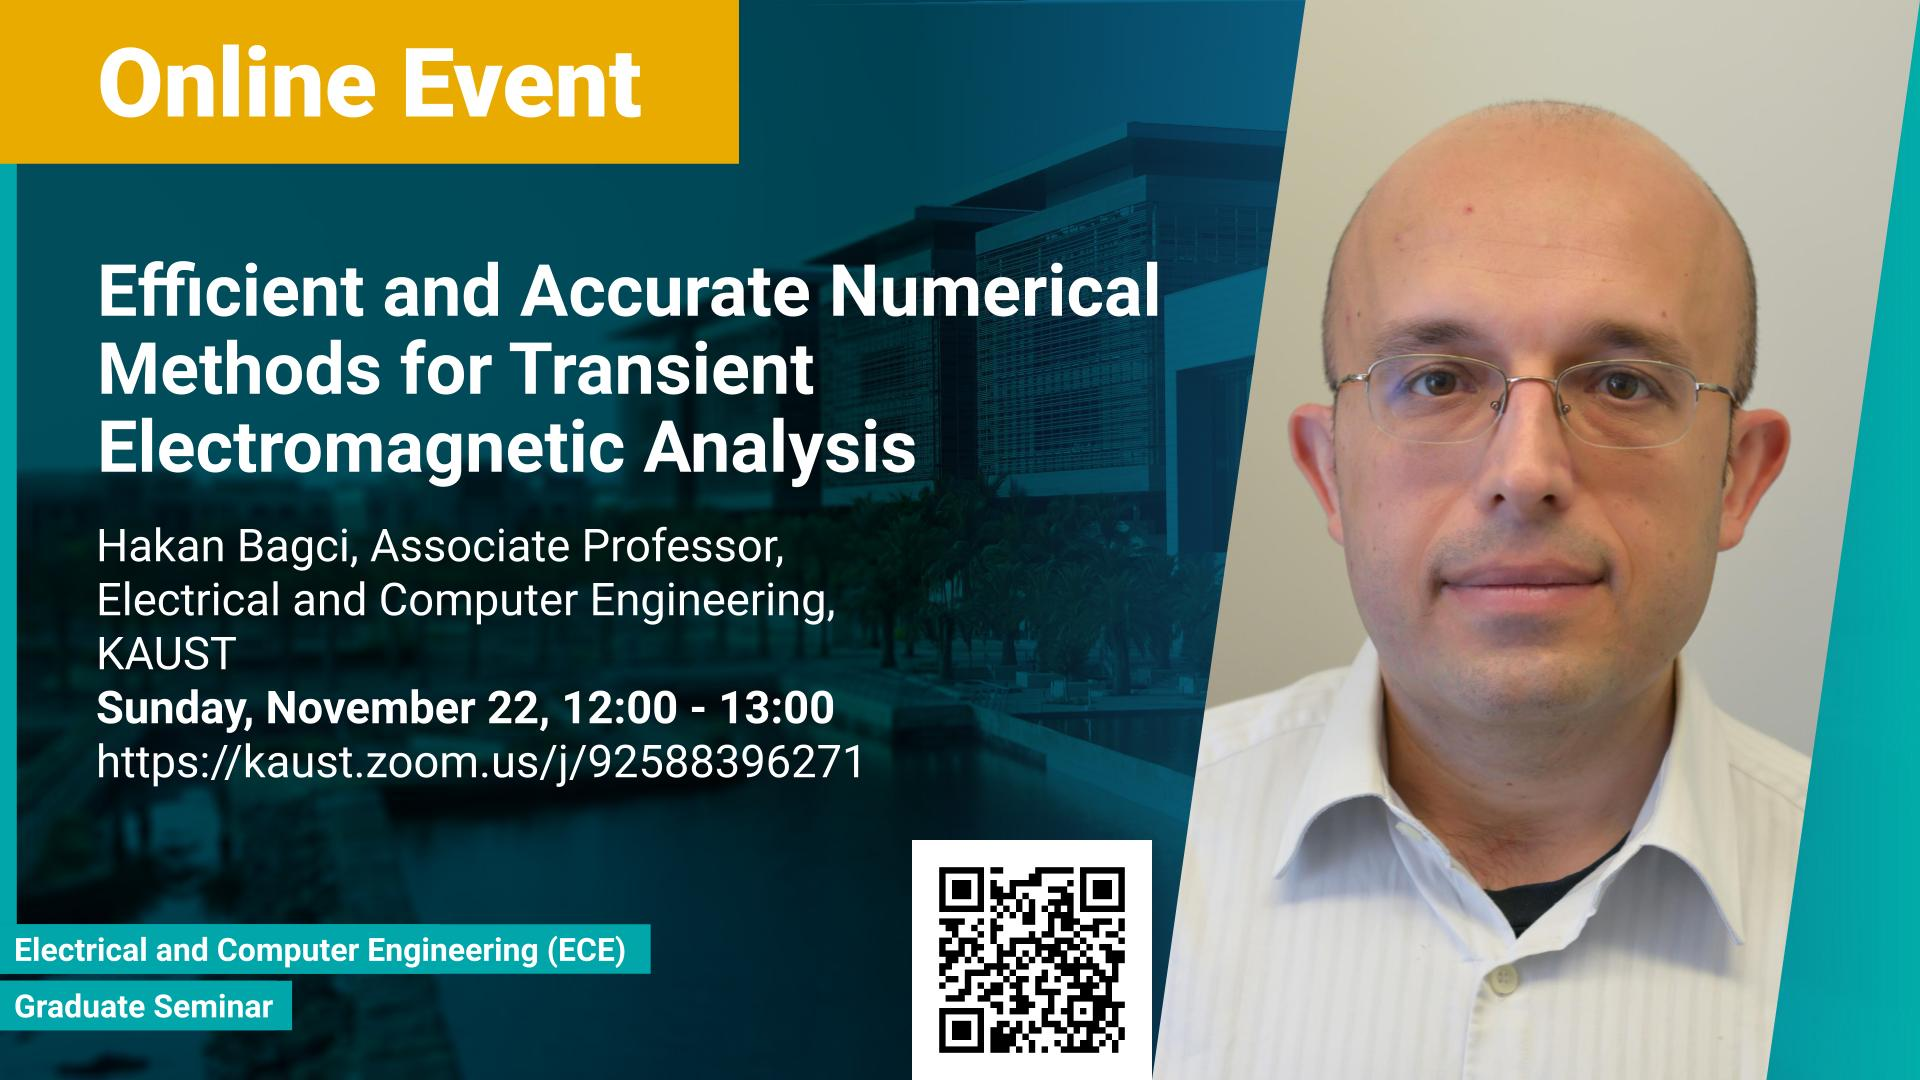 KAUST CEMSE ECE Graduate Seminar Hakan Bagci Efficient and Accurate Numerical Methods for Transient Electromagnetic Analy